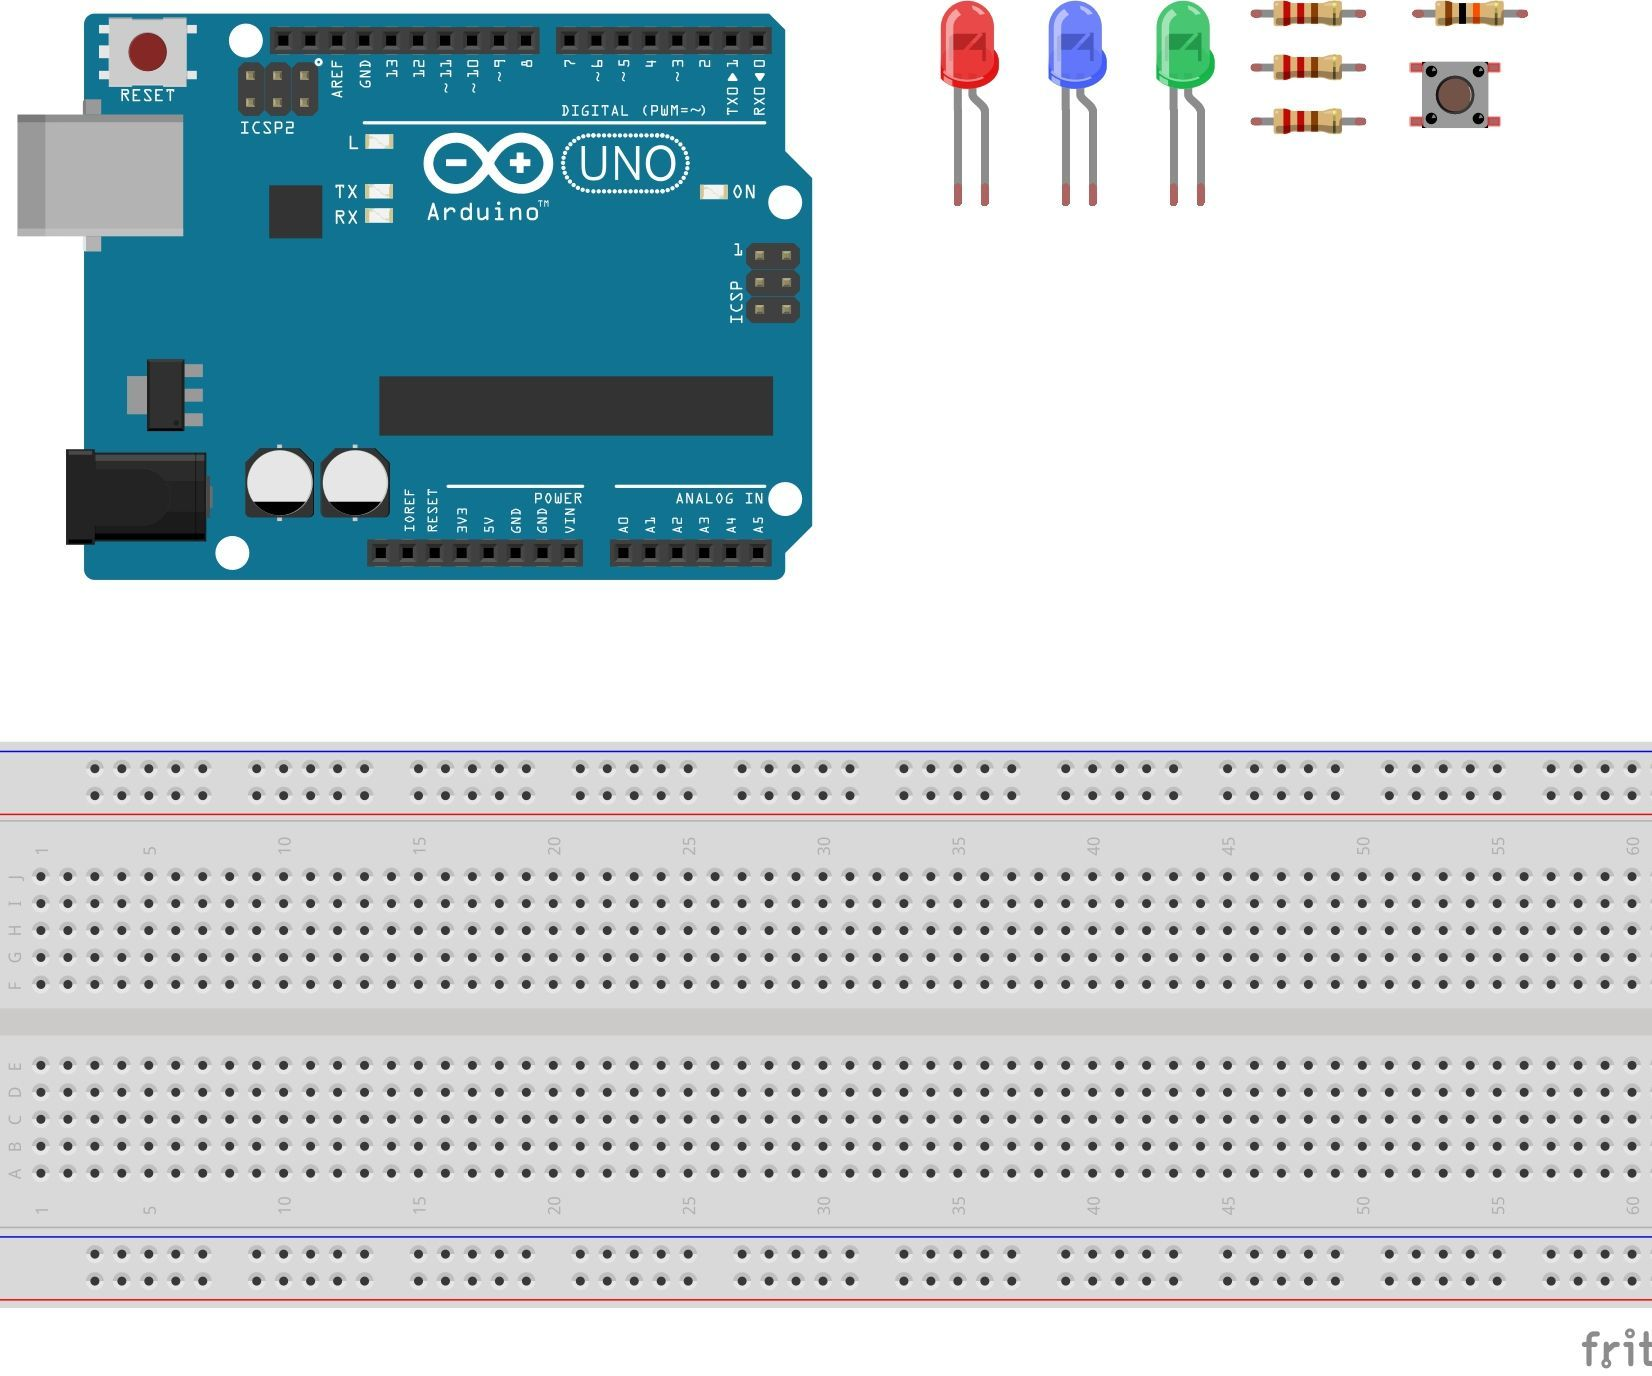 Interrupt Pin With LED's and Button